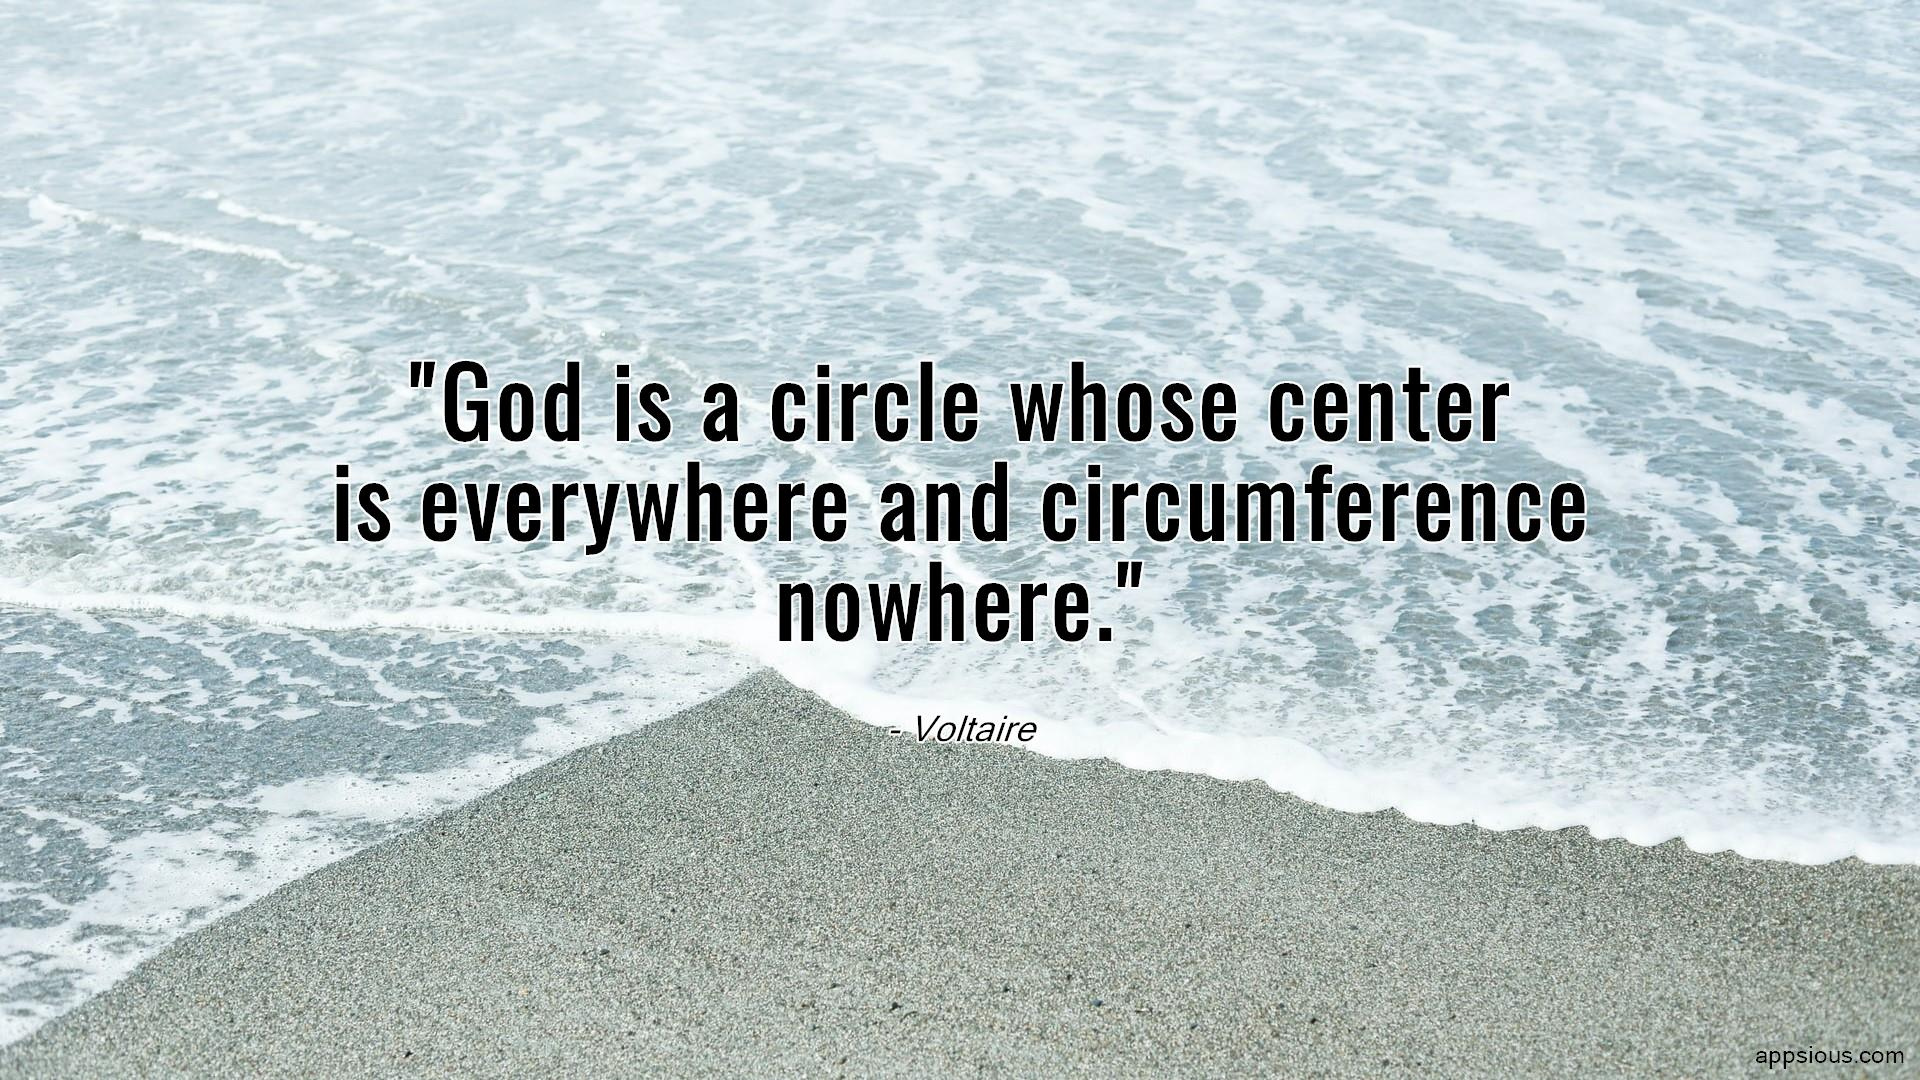 God is a circle whose center is everywhere and circumference nowhere.